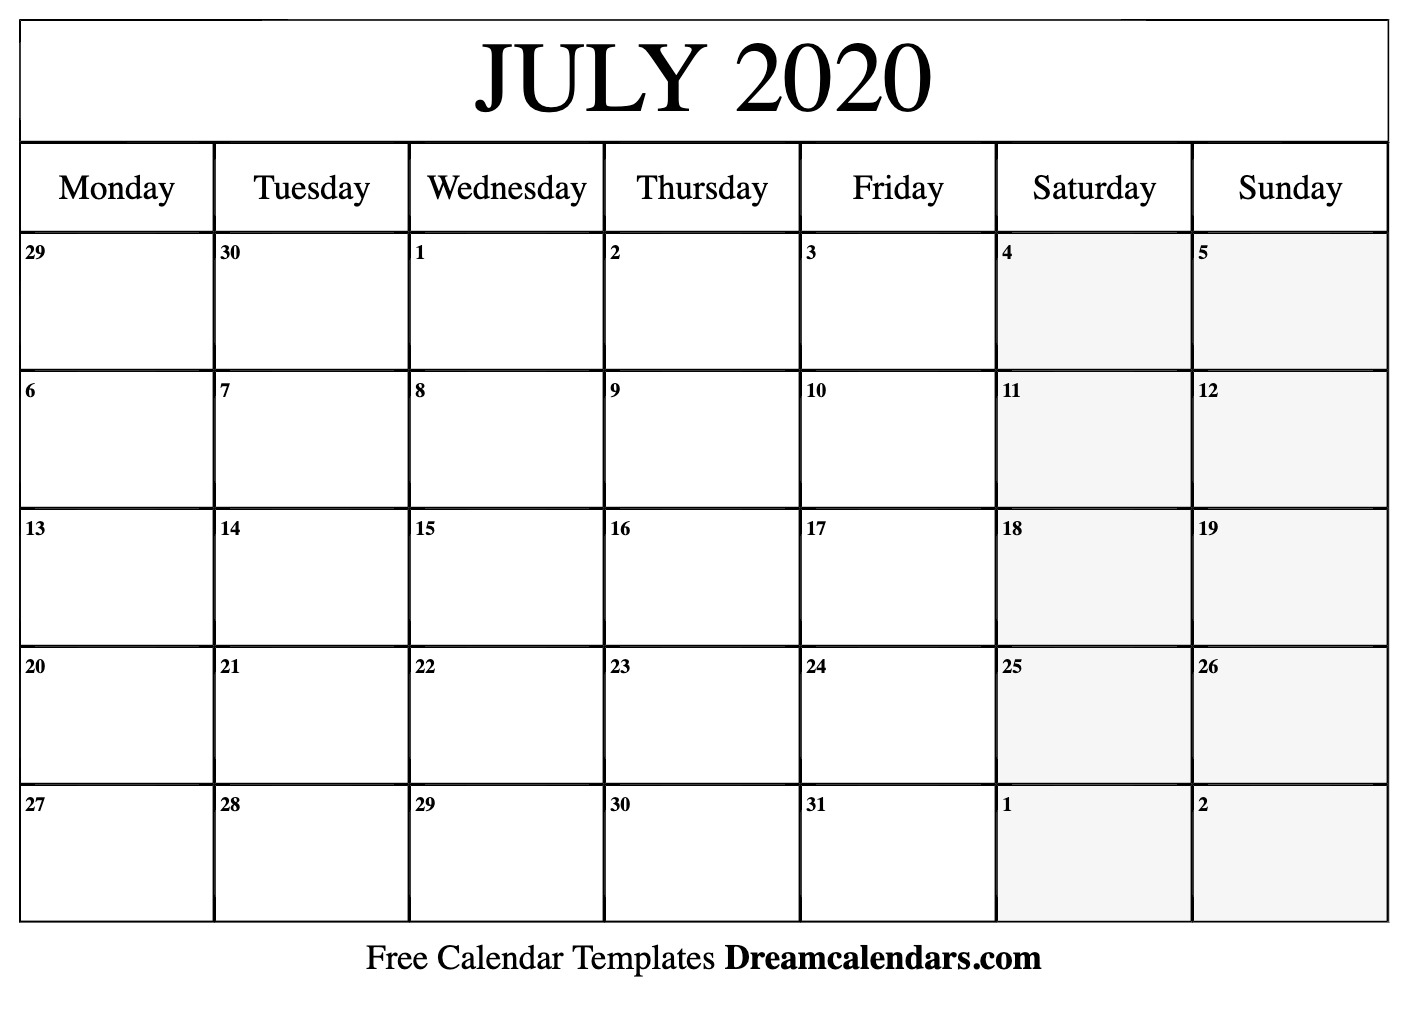 Printable July 2020 Calendar with regard to Calendar 2020 Printable Calendar Starting With Monday